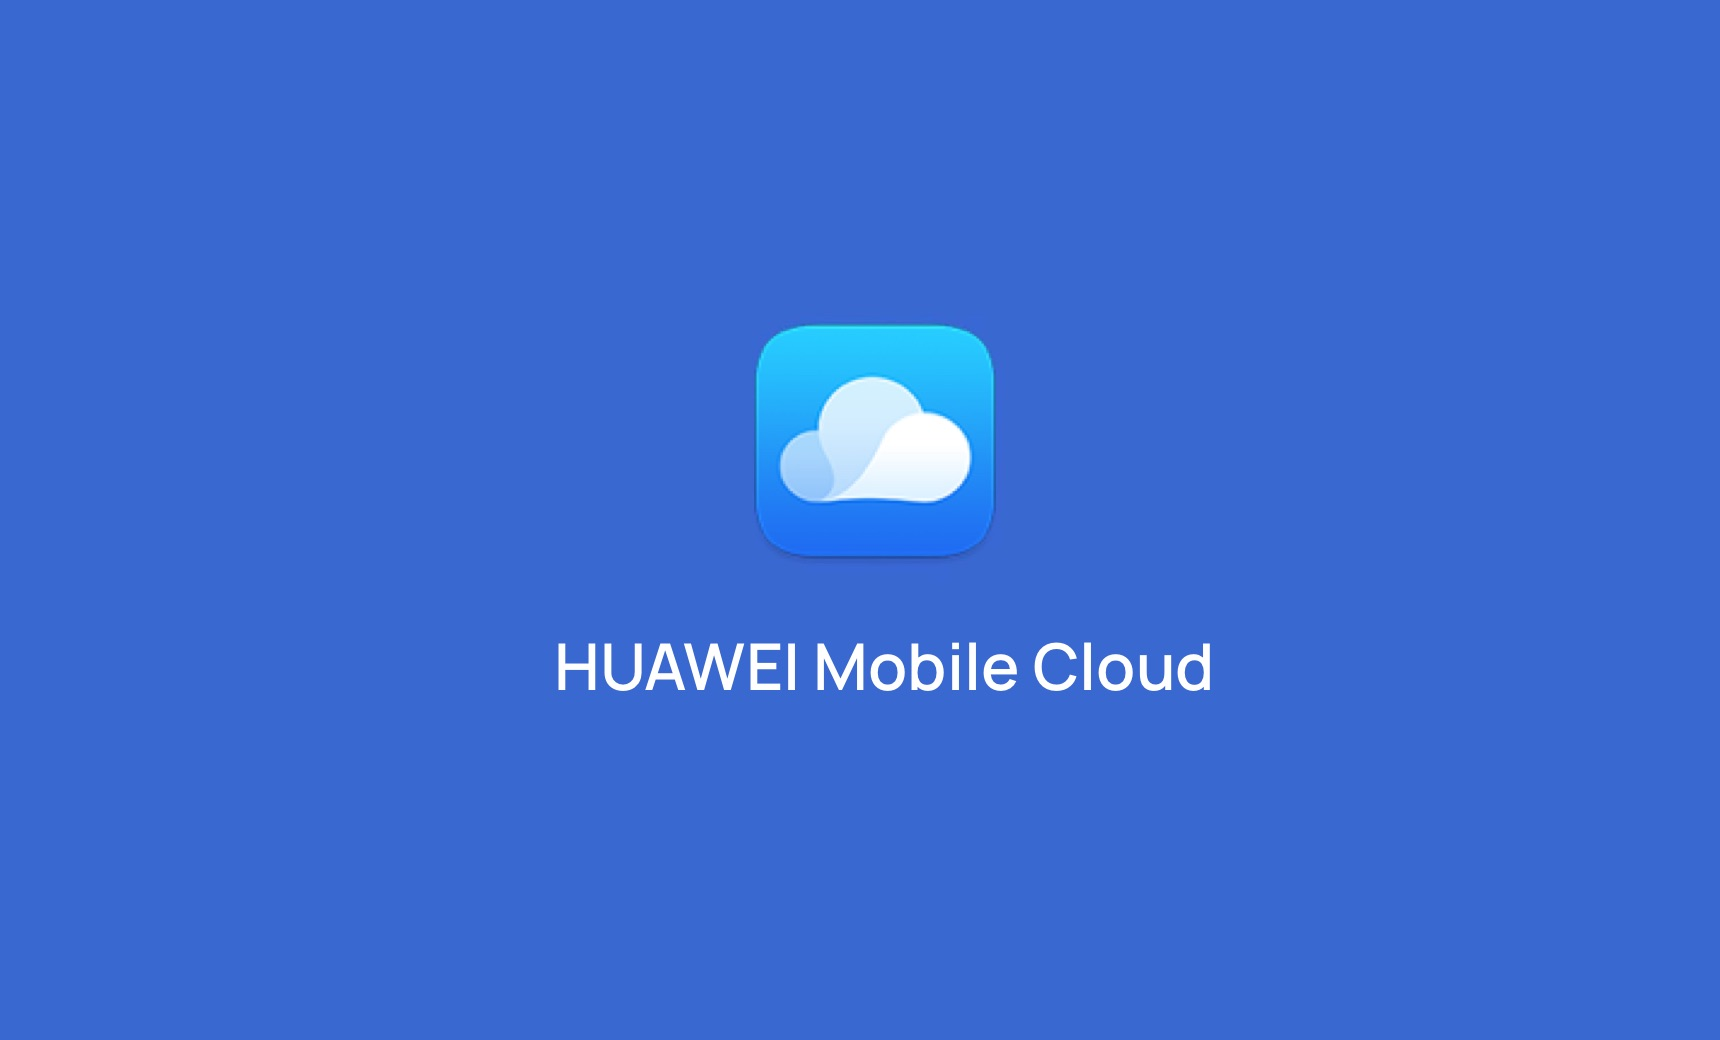 sustainability - Privacy - Huawei mobile cloud service - HiCloud